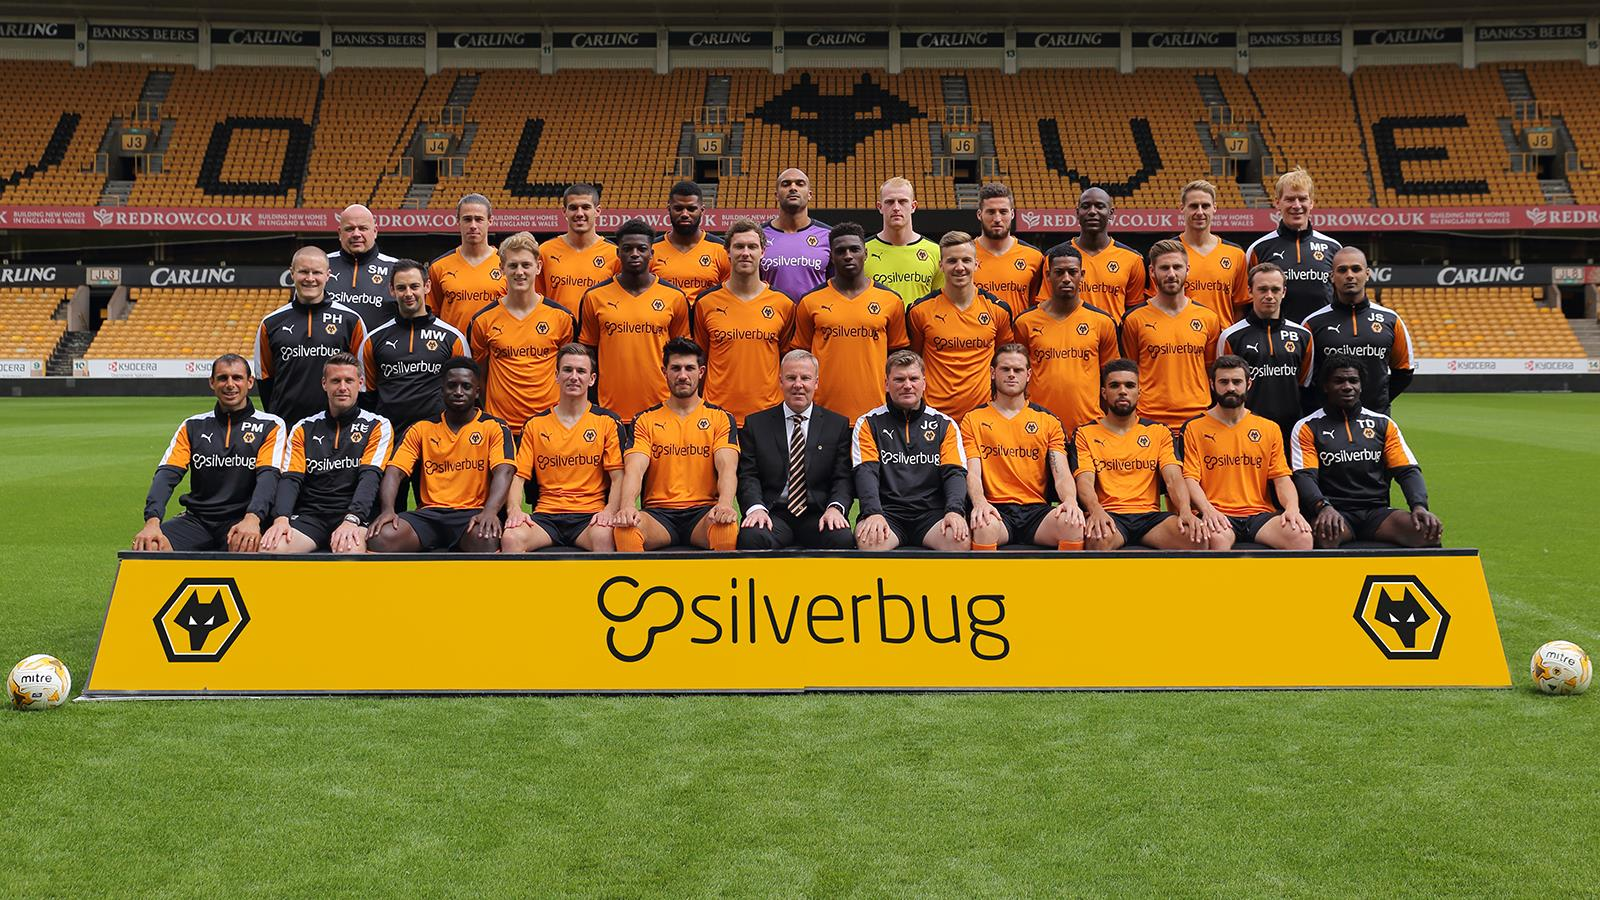 Wolverhampton Wanderers F.C. Wallpaper And Background